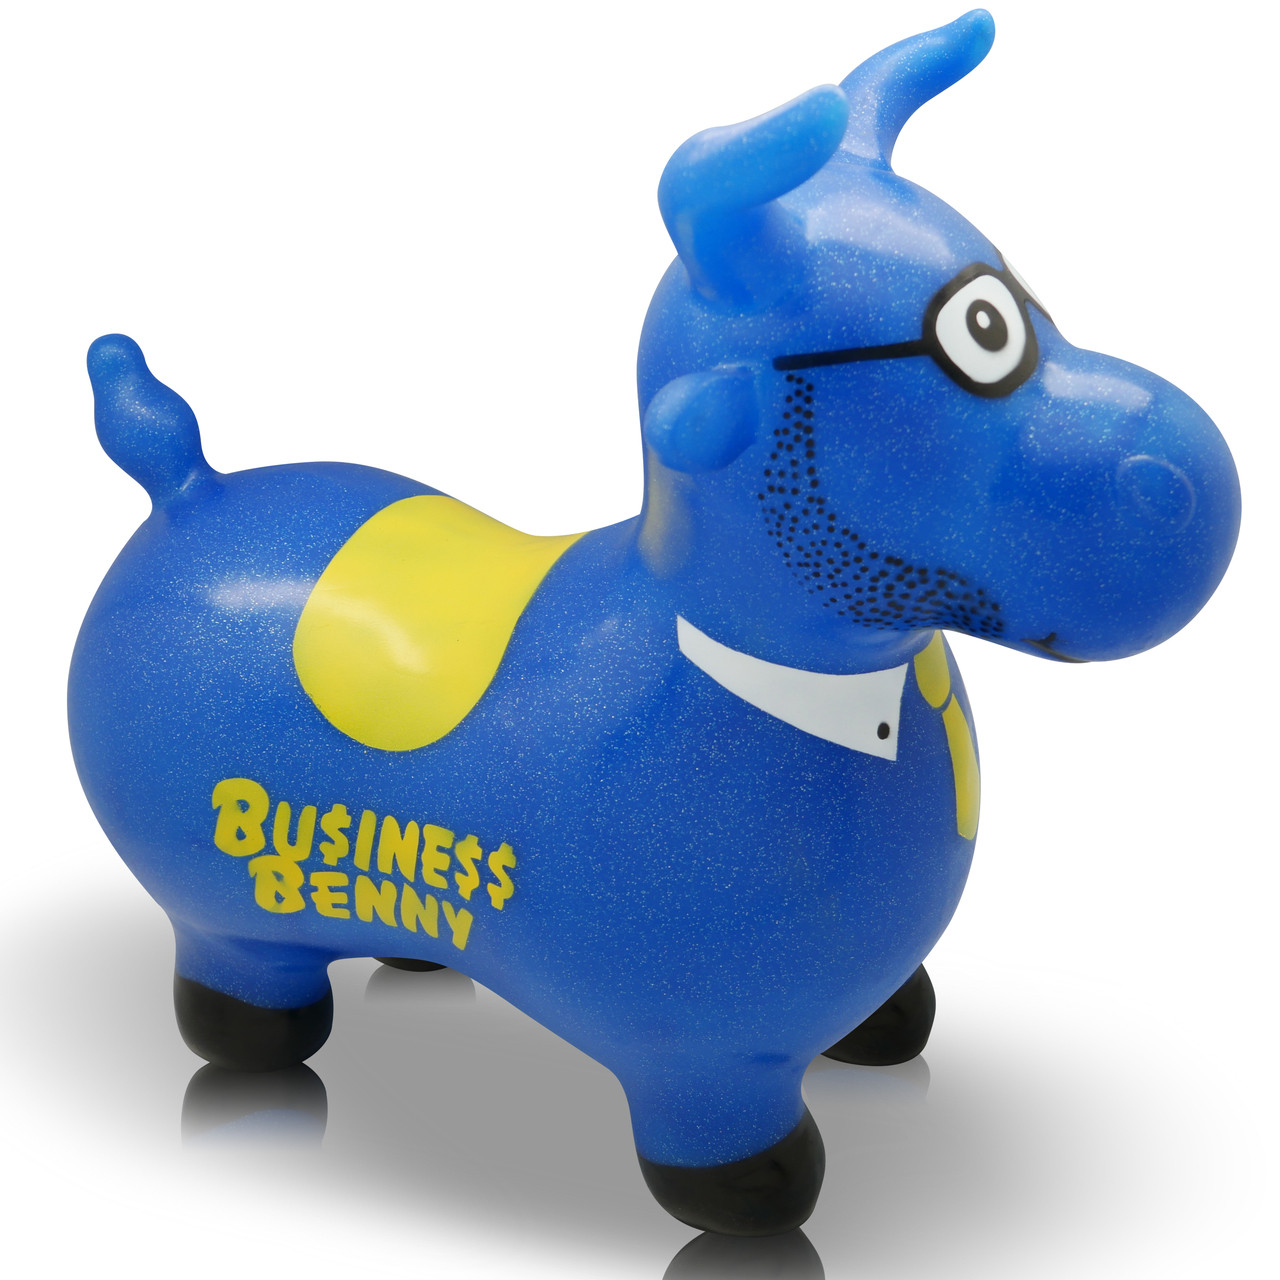 0d0b68d75 Business Benny Bouncy Horse A Waliki fun ride on BULL toy for toddlers